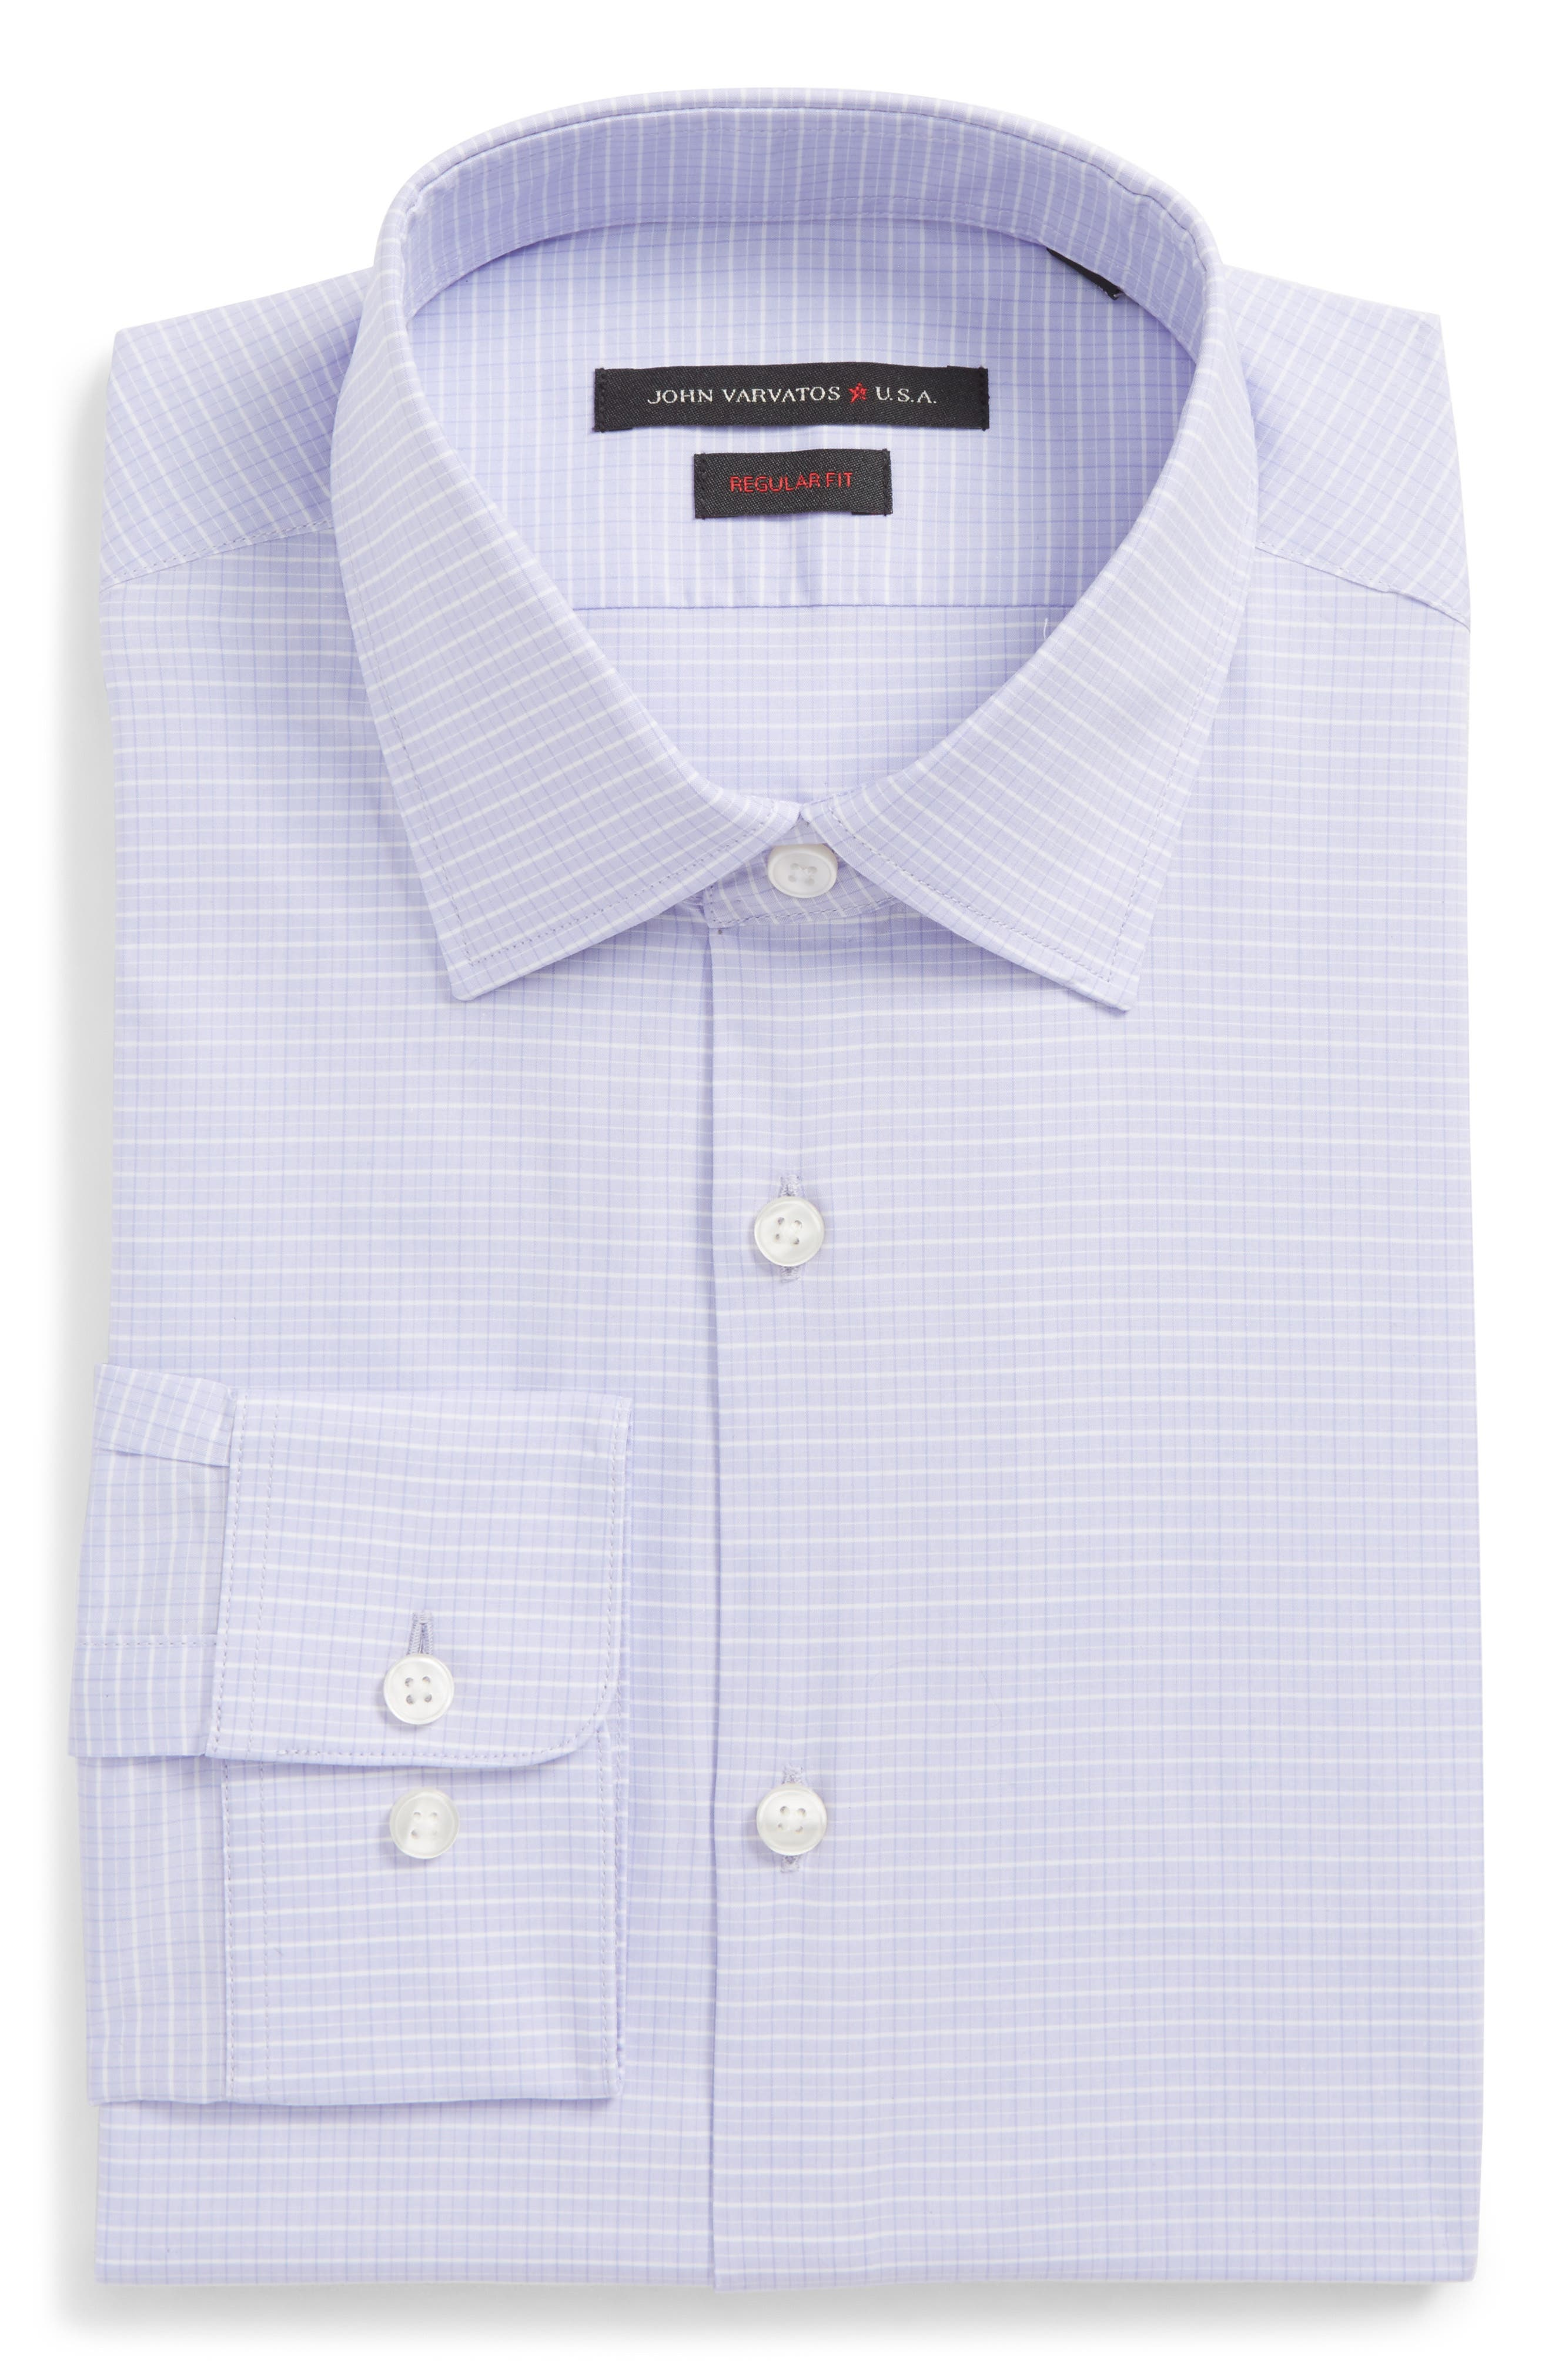 Regular Fit Stretch Check Dress Shirt,                             Main thumbnail 1, color,                             523